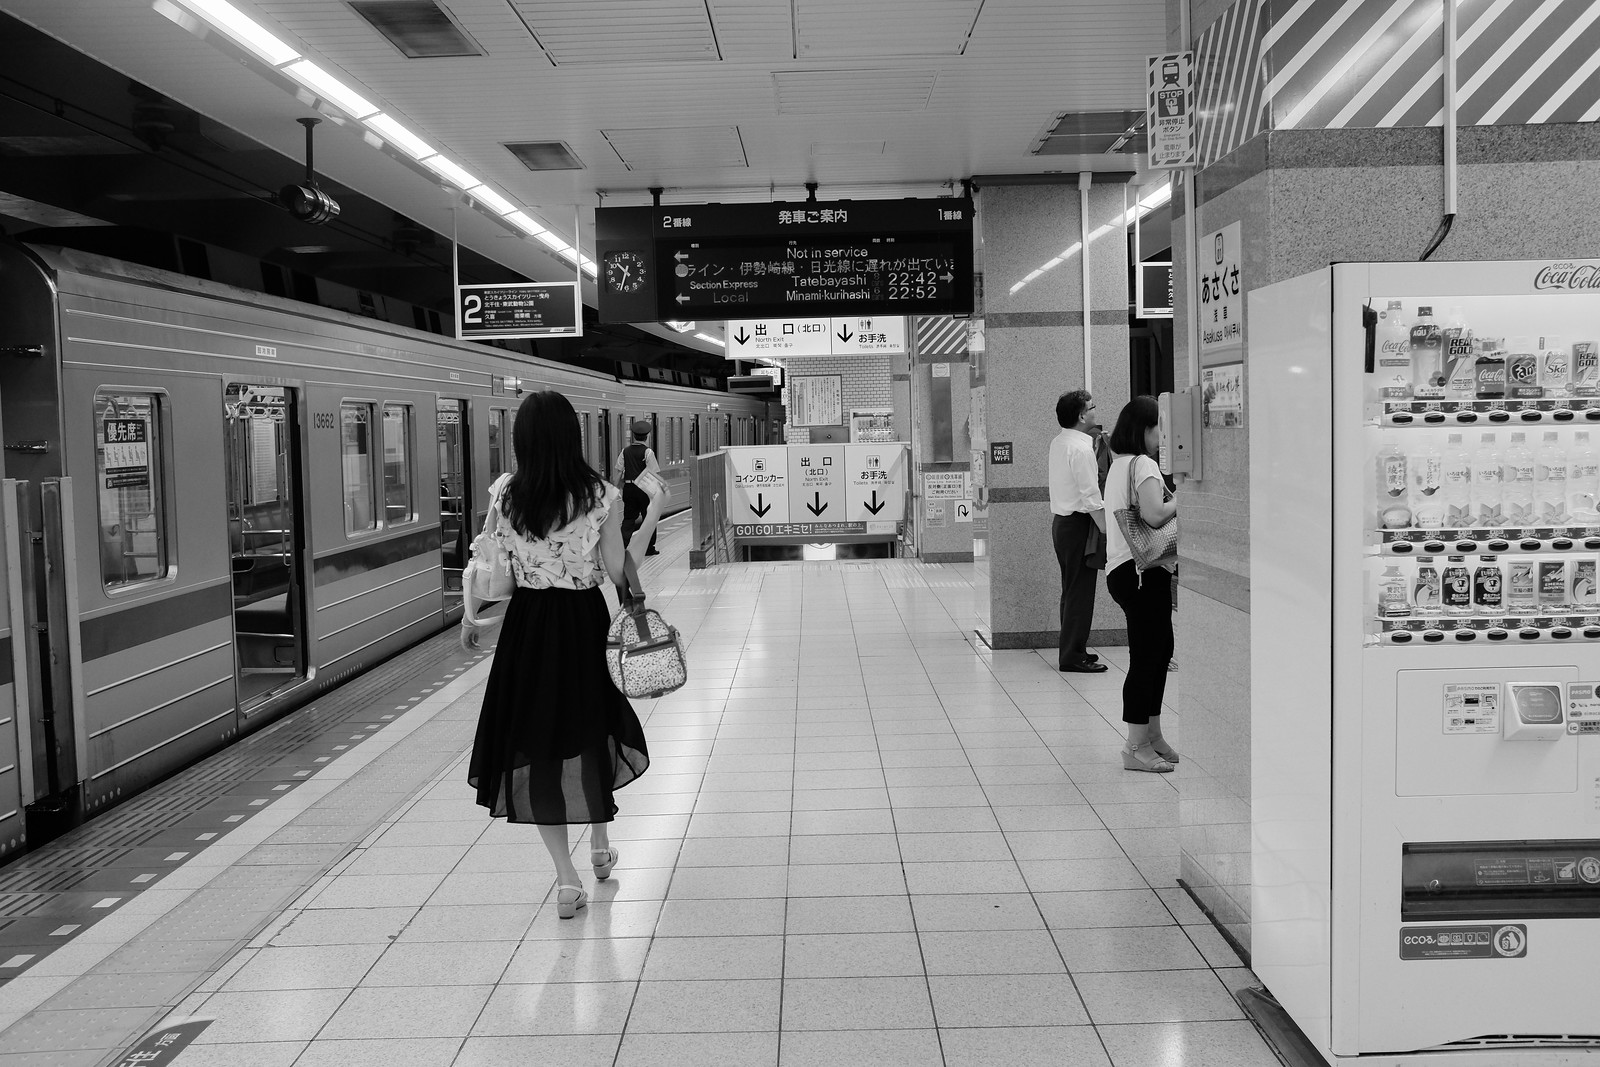 The Asakusa sation taken by FUJIFILM X100S.